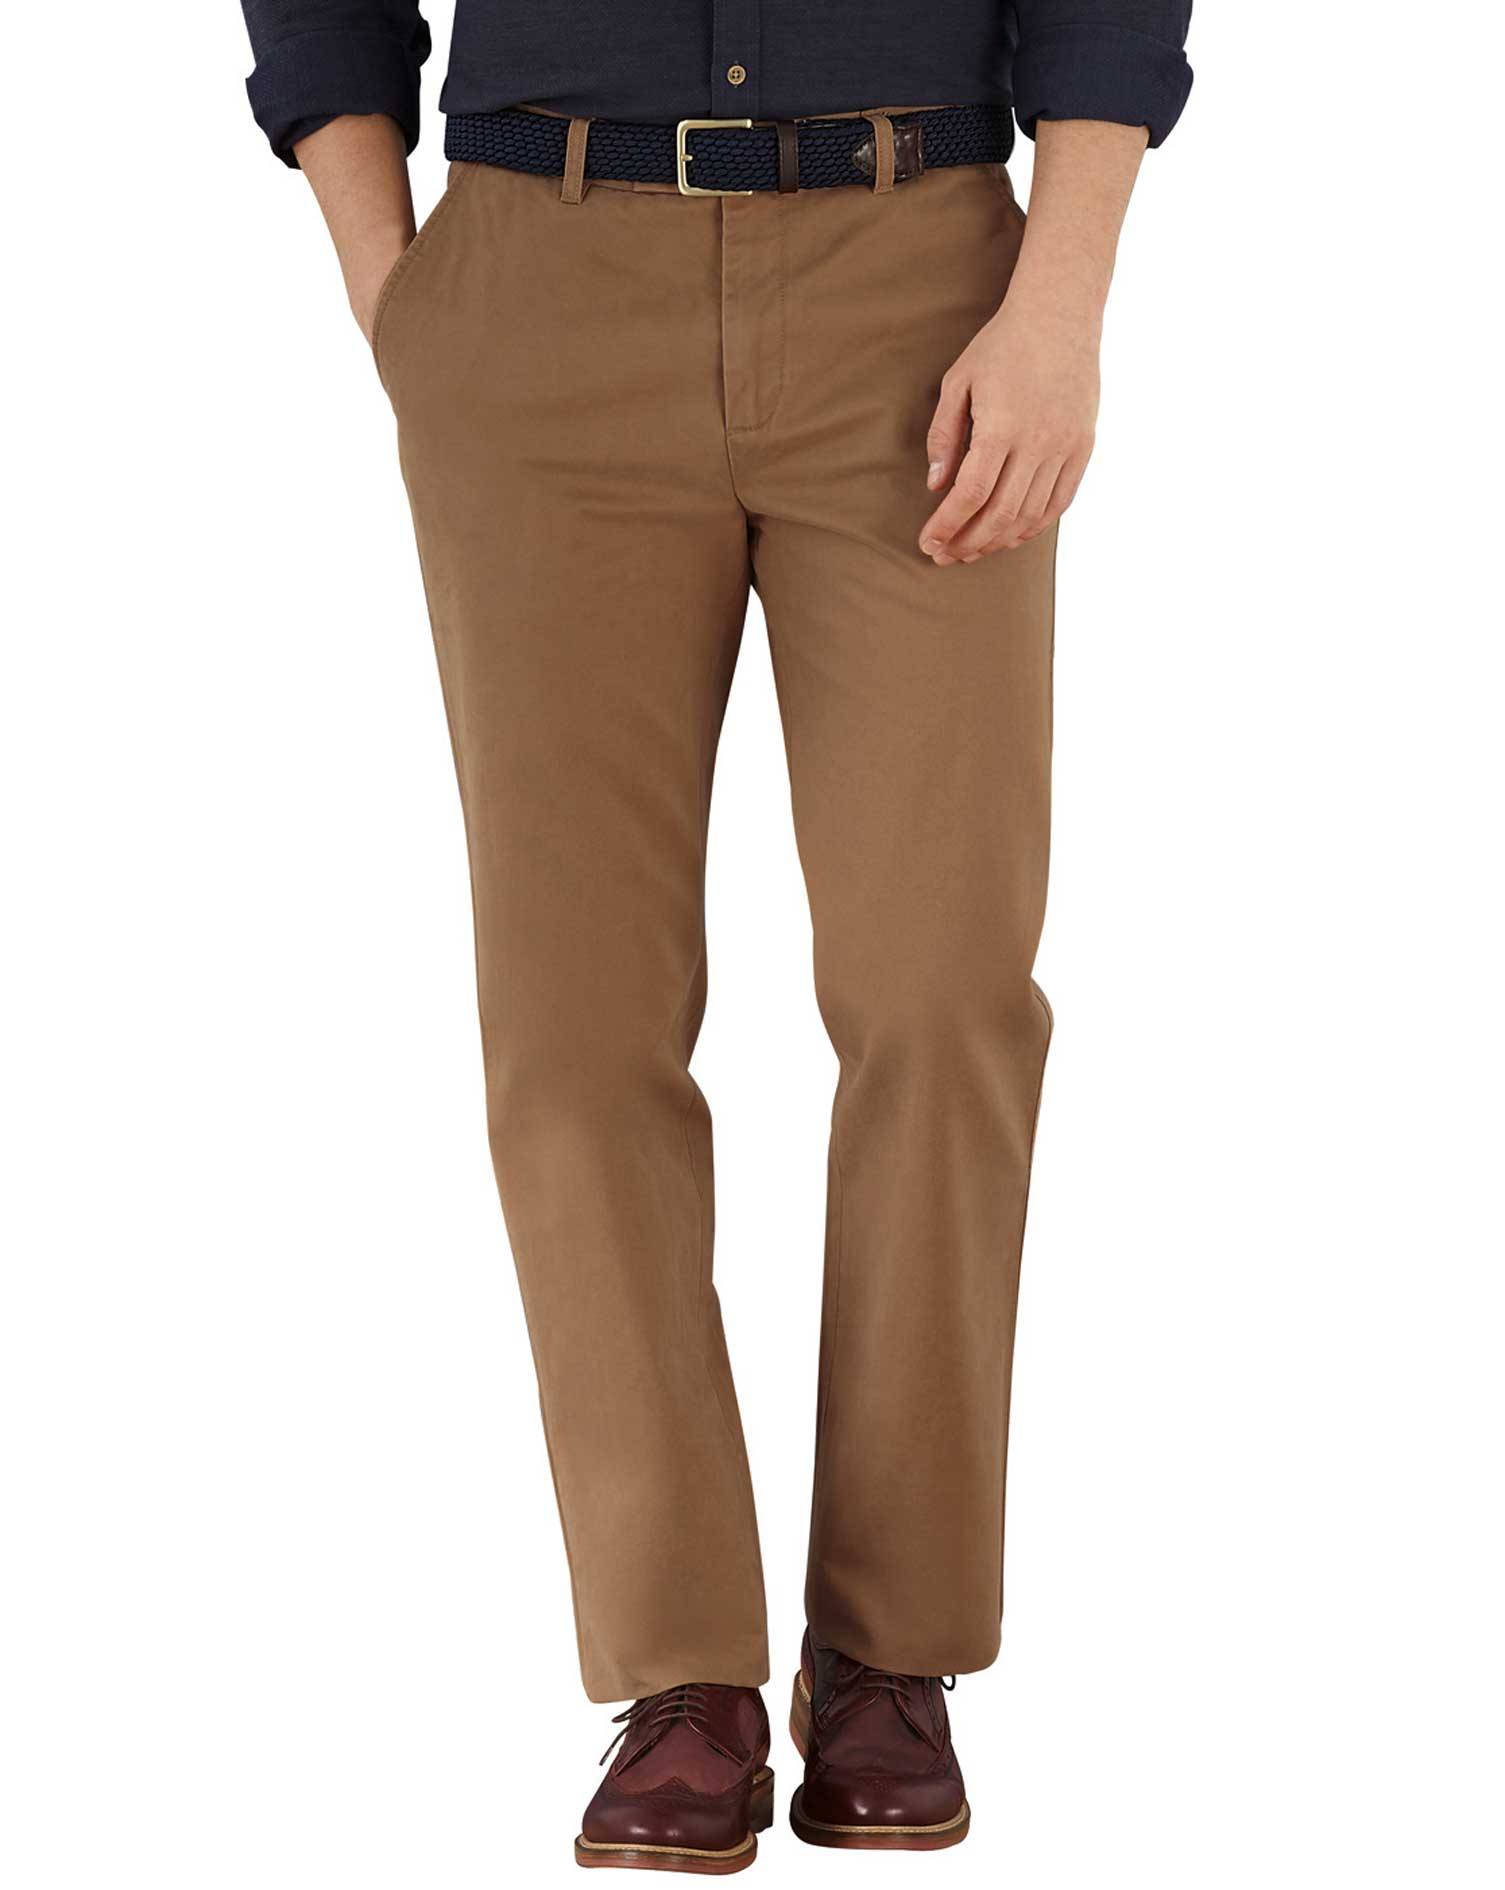 Camel Slim Fit Flat Front Cotton Chino Trousers Size W38 L34 by Charles Tyrwhitt